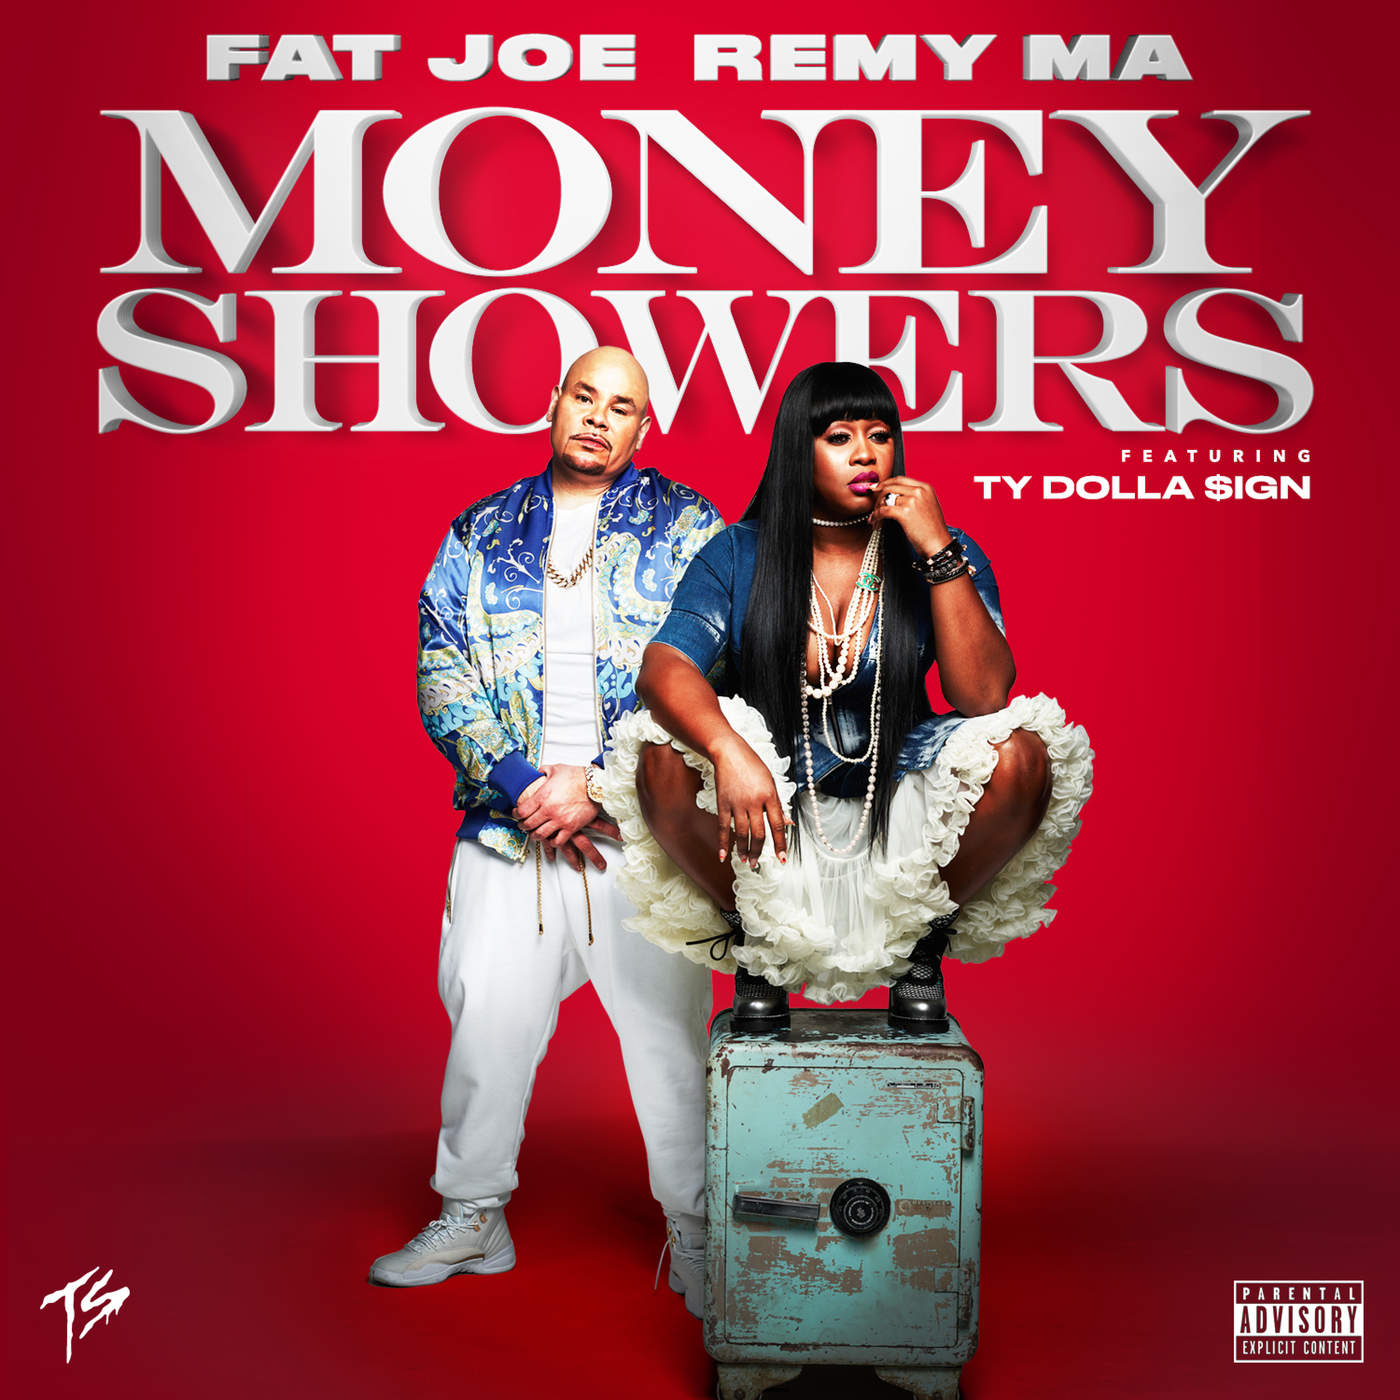 Fat Joe & Remy Ma - Money Showers (feat. Ty Dolla $ign) - Single Cover